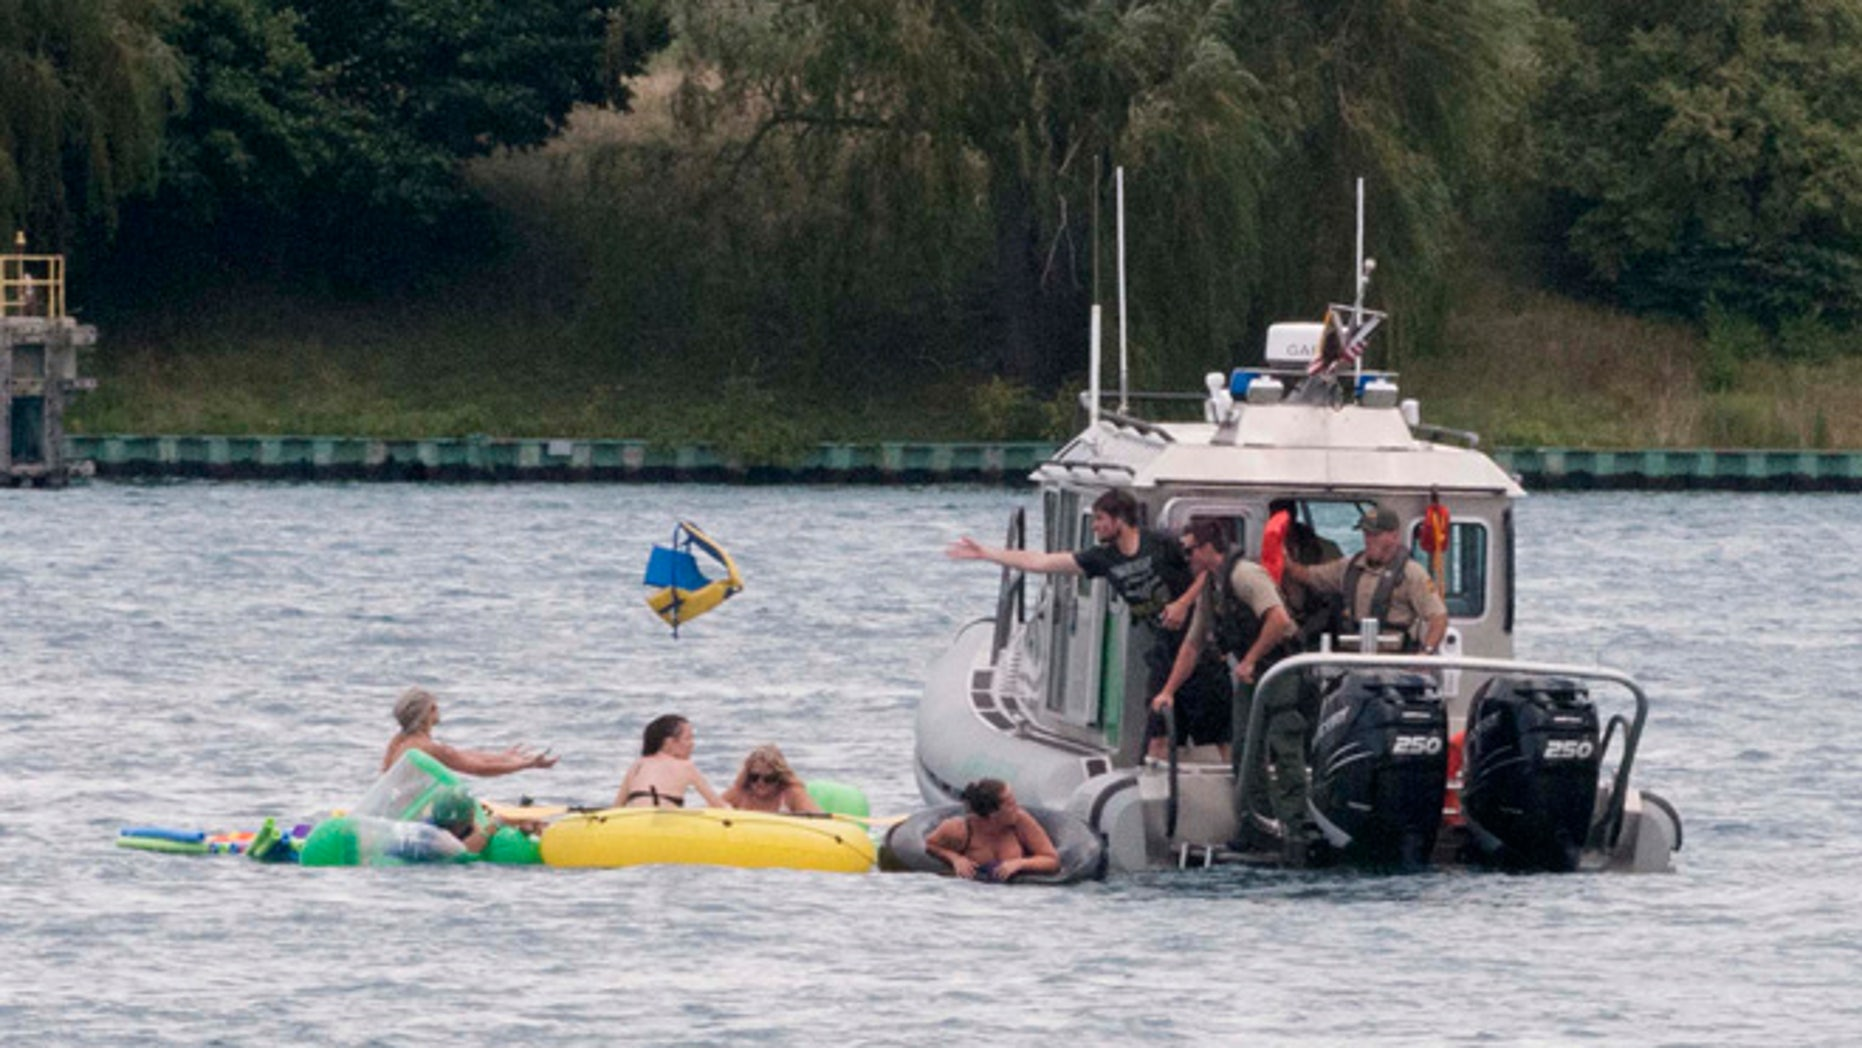 A Customs and Border Protection boat helps floaters during Float Down on the St. Clair River in Port Huron, Mich., Sunday, Aug. 21, 2016. The west winds blew most boaters toward the Canada shore and they had to be pulled back to the U.S.